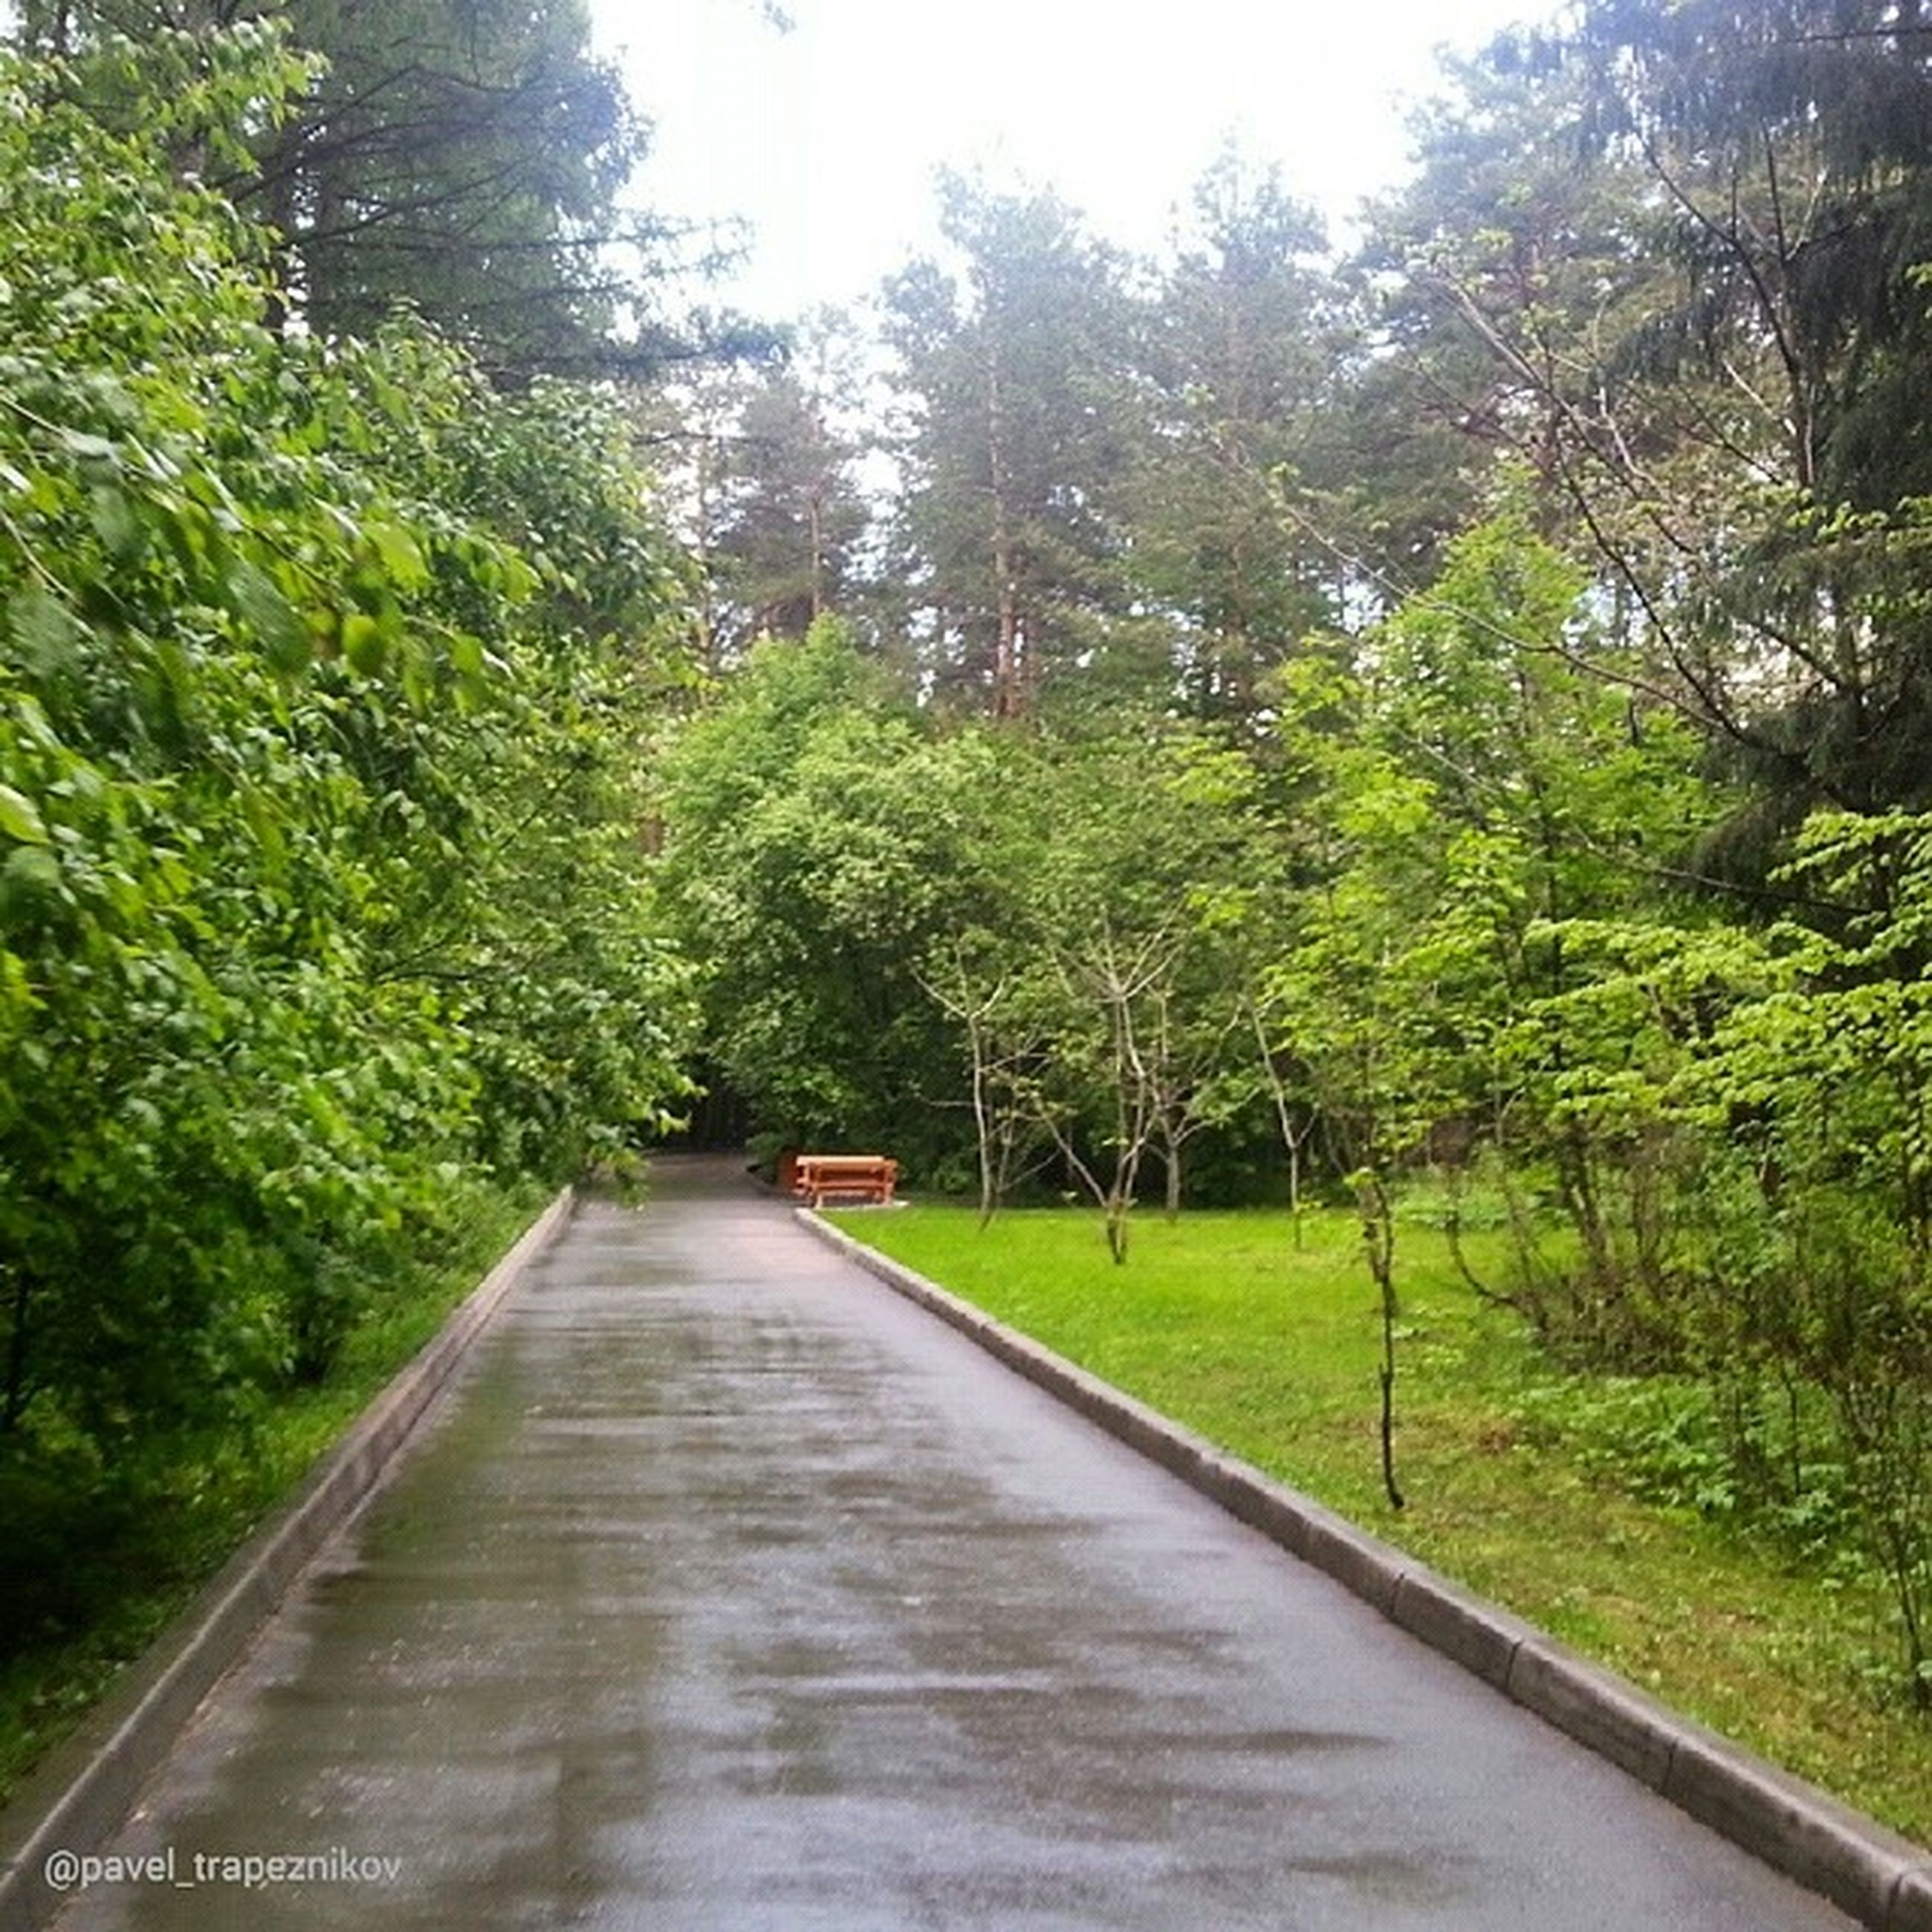 tree, the way forward, green color, growth, tranquility, grass, nature, tranquil scene, lush foliage, diminishing perspective, beauty in nature, sunlight, vanishing point, green, plant, road, transportation, scenics, footpath, empty